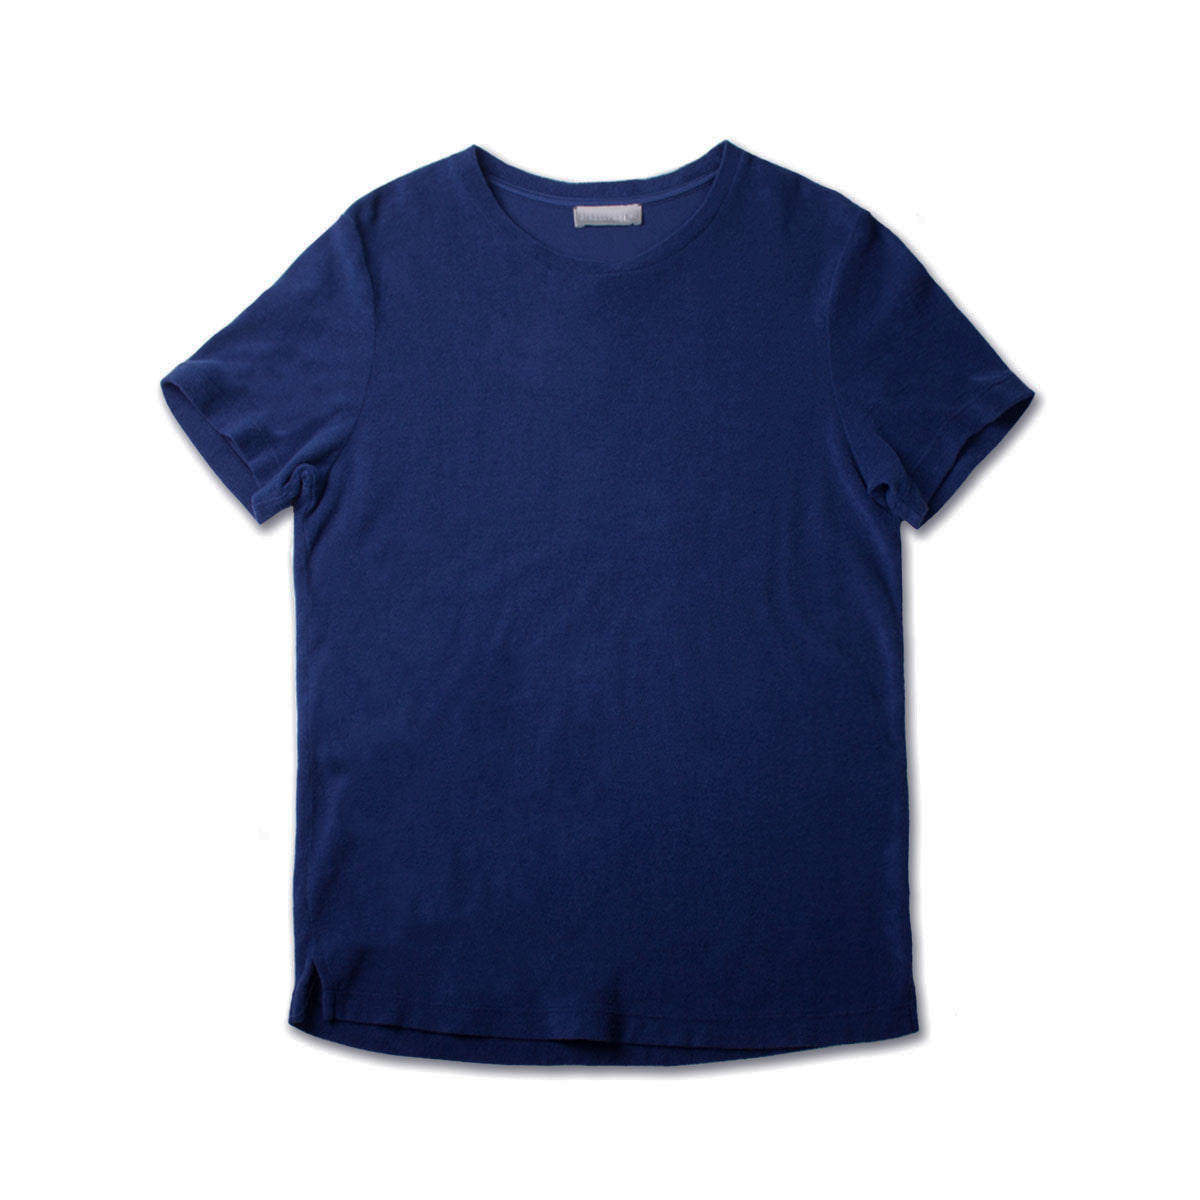 [GIRELLI BRUNI] WIDE NECK TERRY COLTH T-SHIRT 'INDIGO'